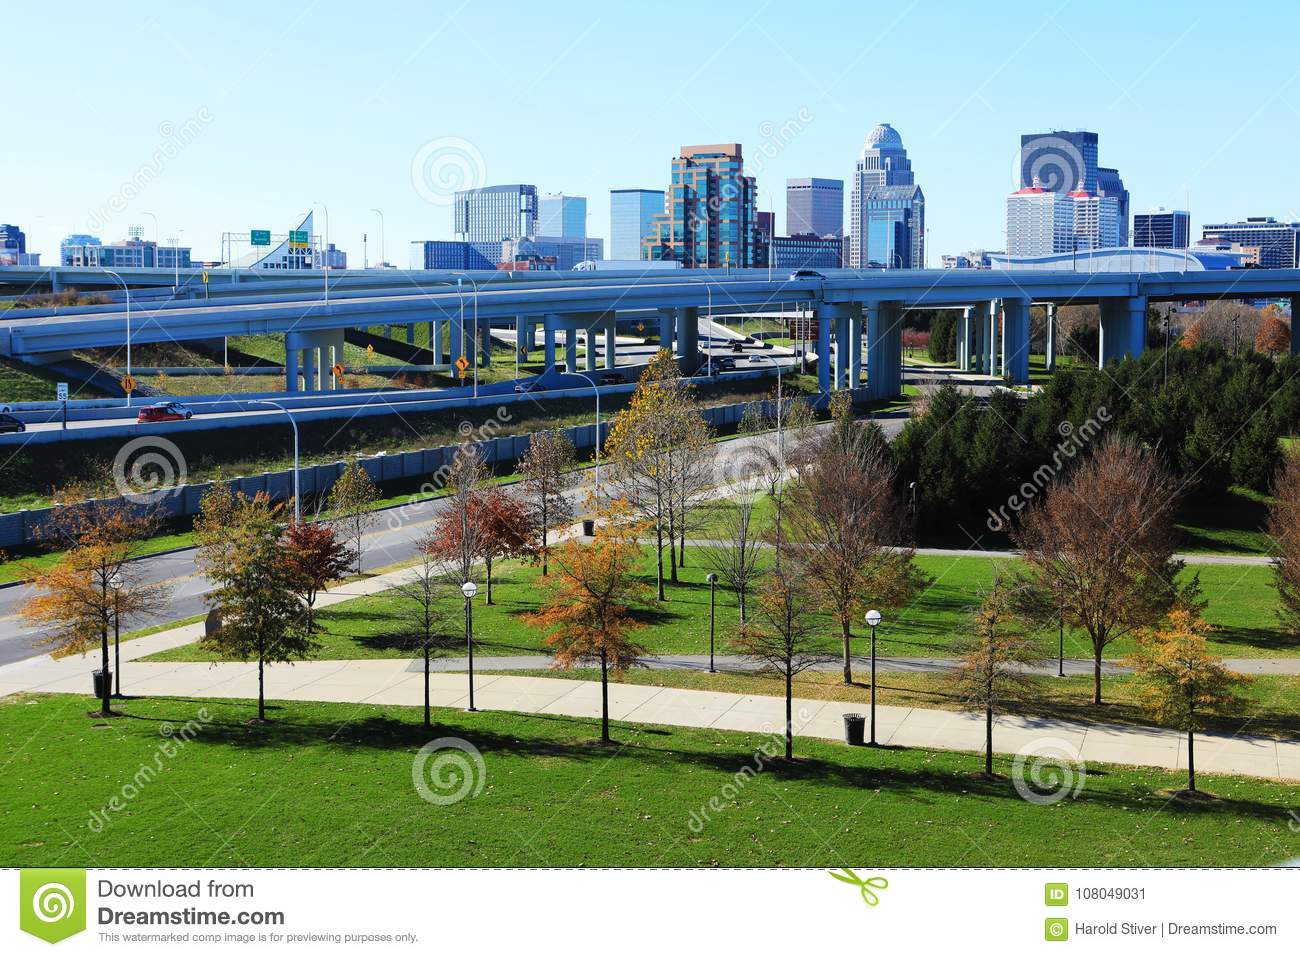 Louisville, Kentucky skyline with expressway in front